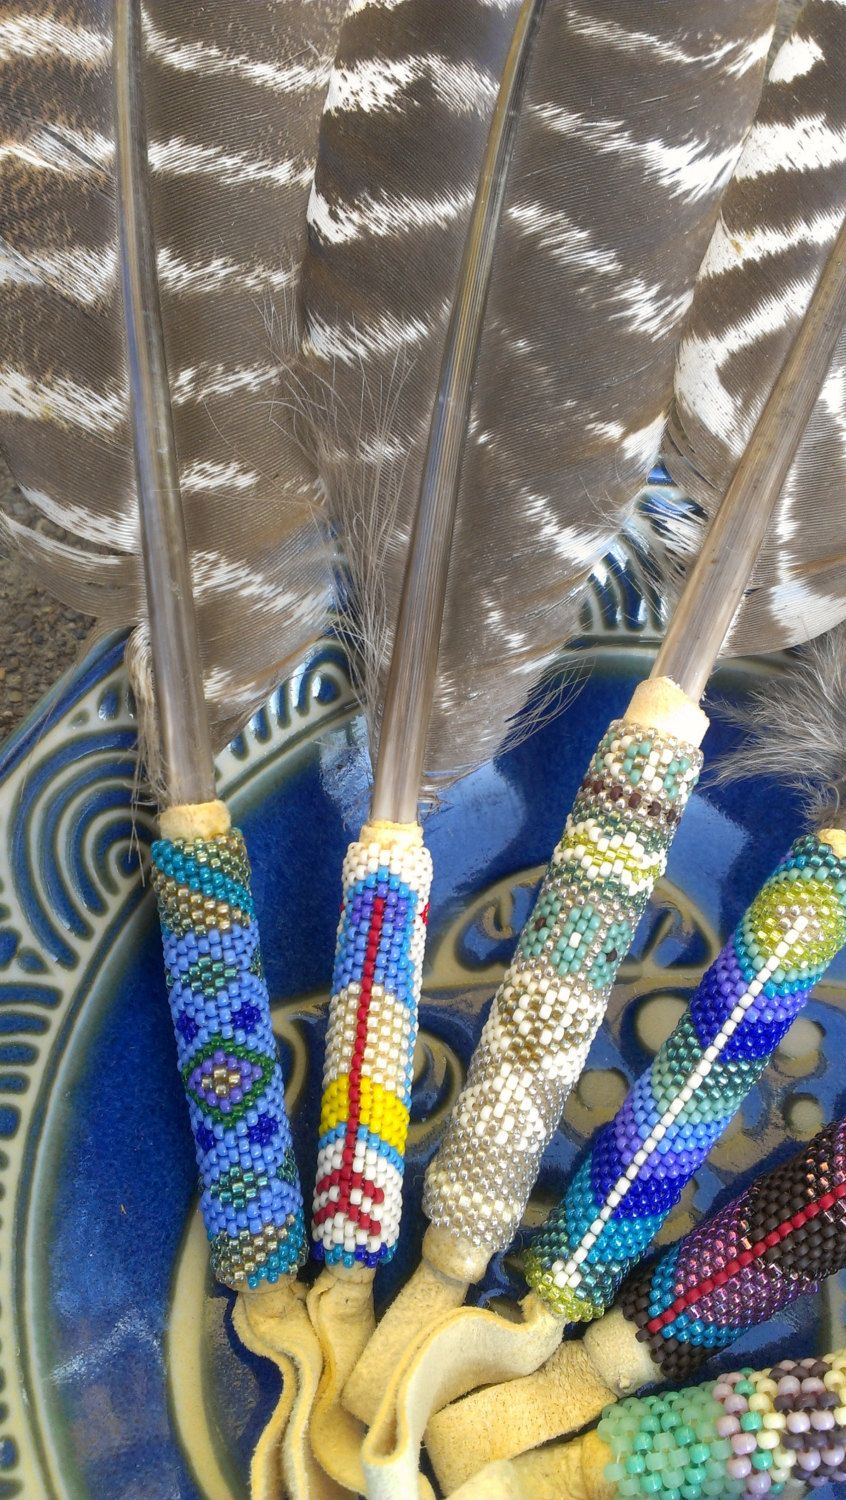 Seven arrows ceremonial smudge feather my grandfatherus people